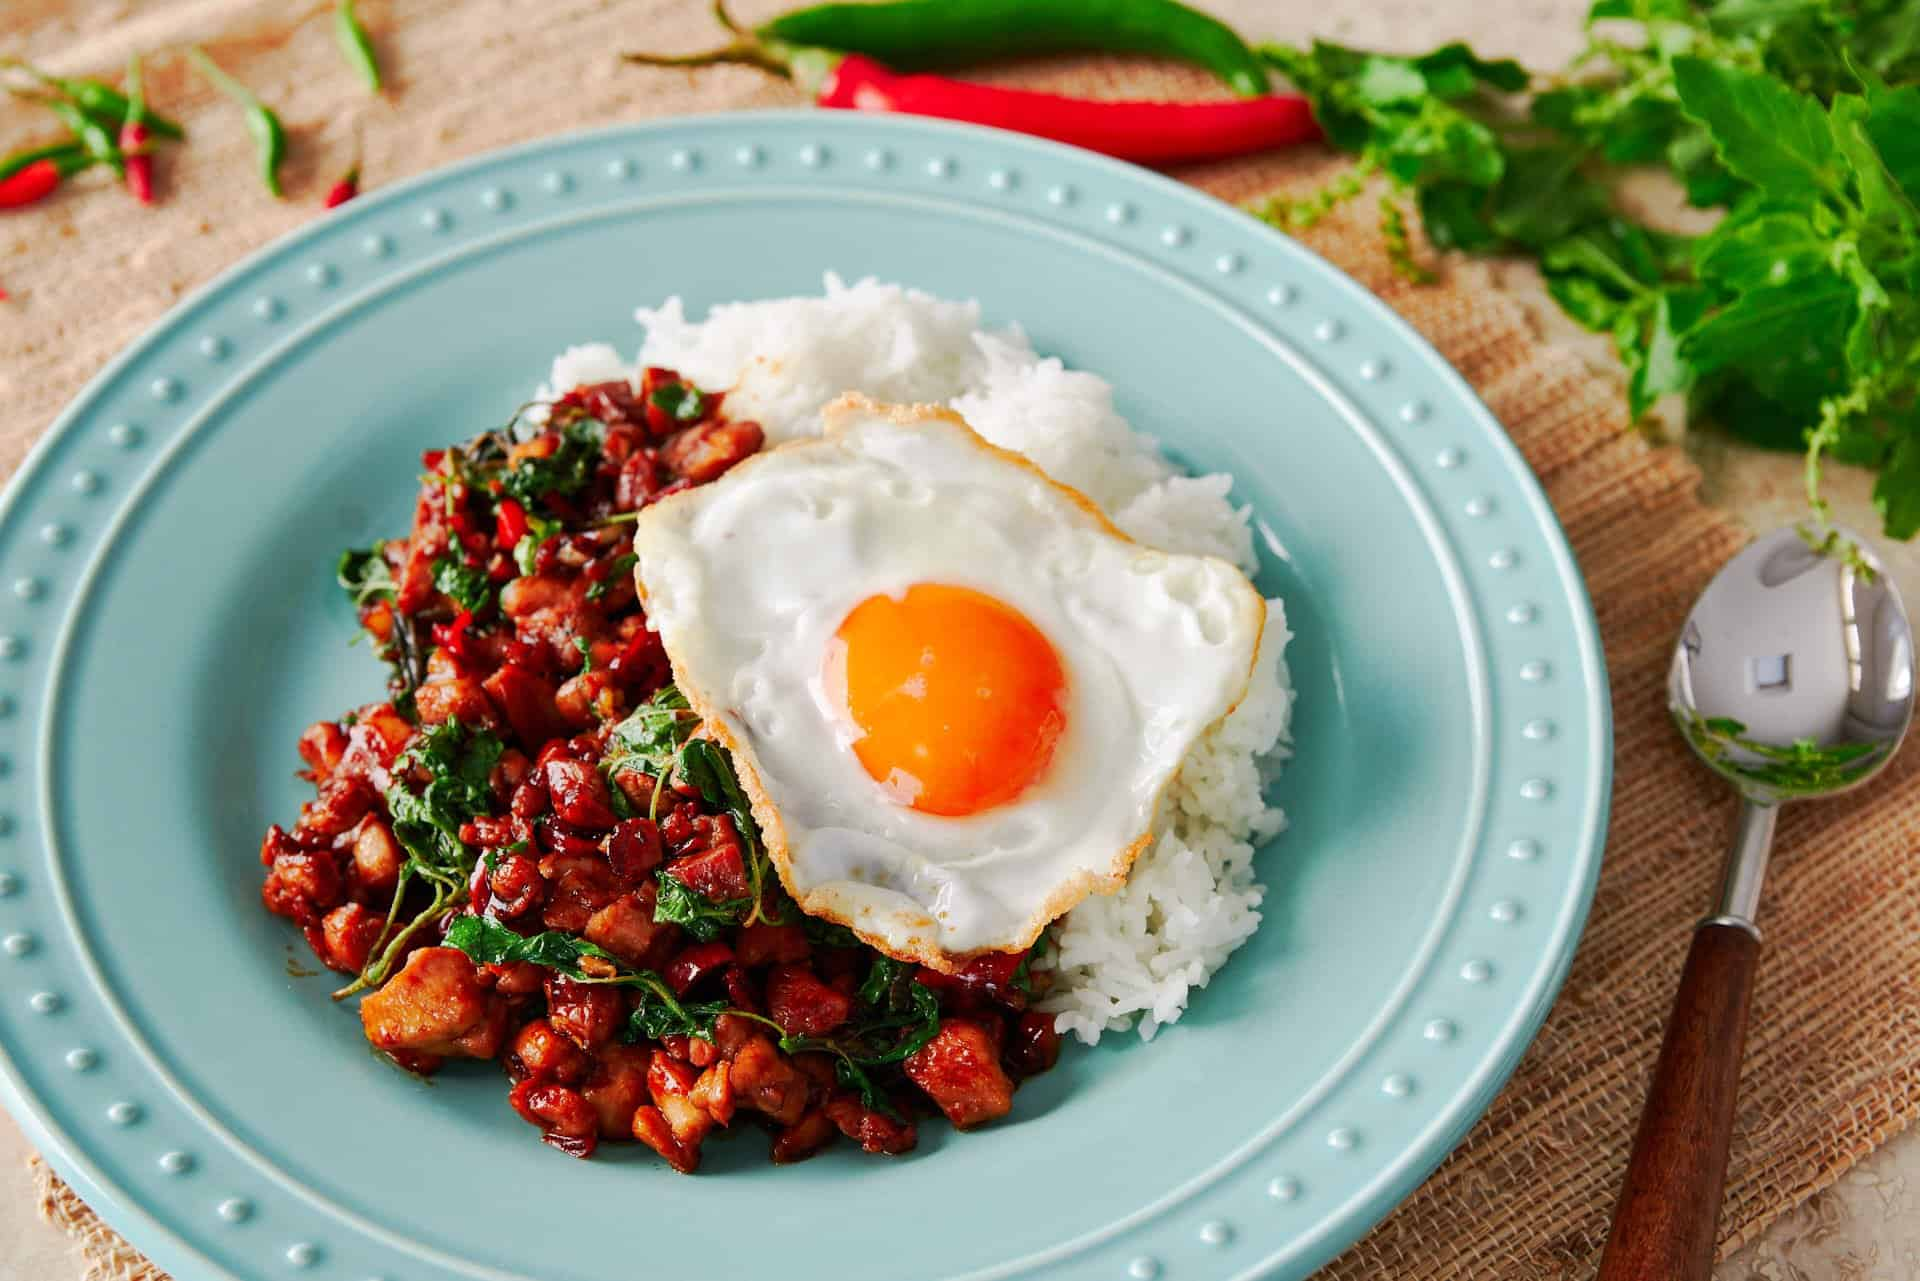 Basil Chicken or Pad Kraprow Gai is a classic Thai street food that can be thrown together at home in a matter of minutes. With spicy, garlic infused chicken and basil on Jasmine rice, the dish is topped off with a Thai-style fried egg.